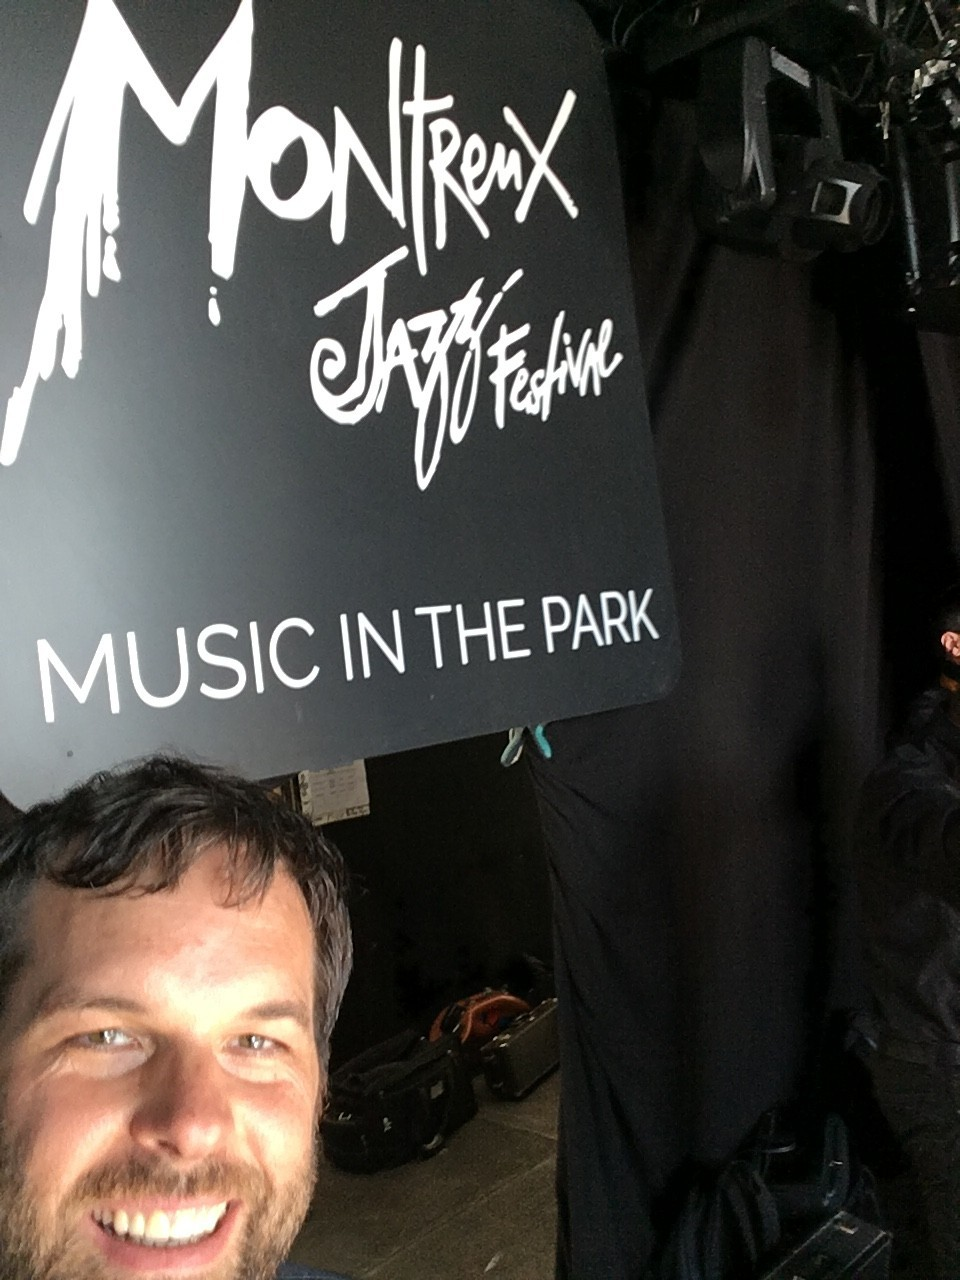 Montreux 2018 - Music in the Park